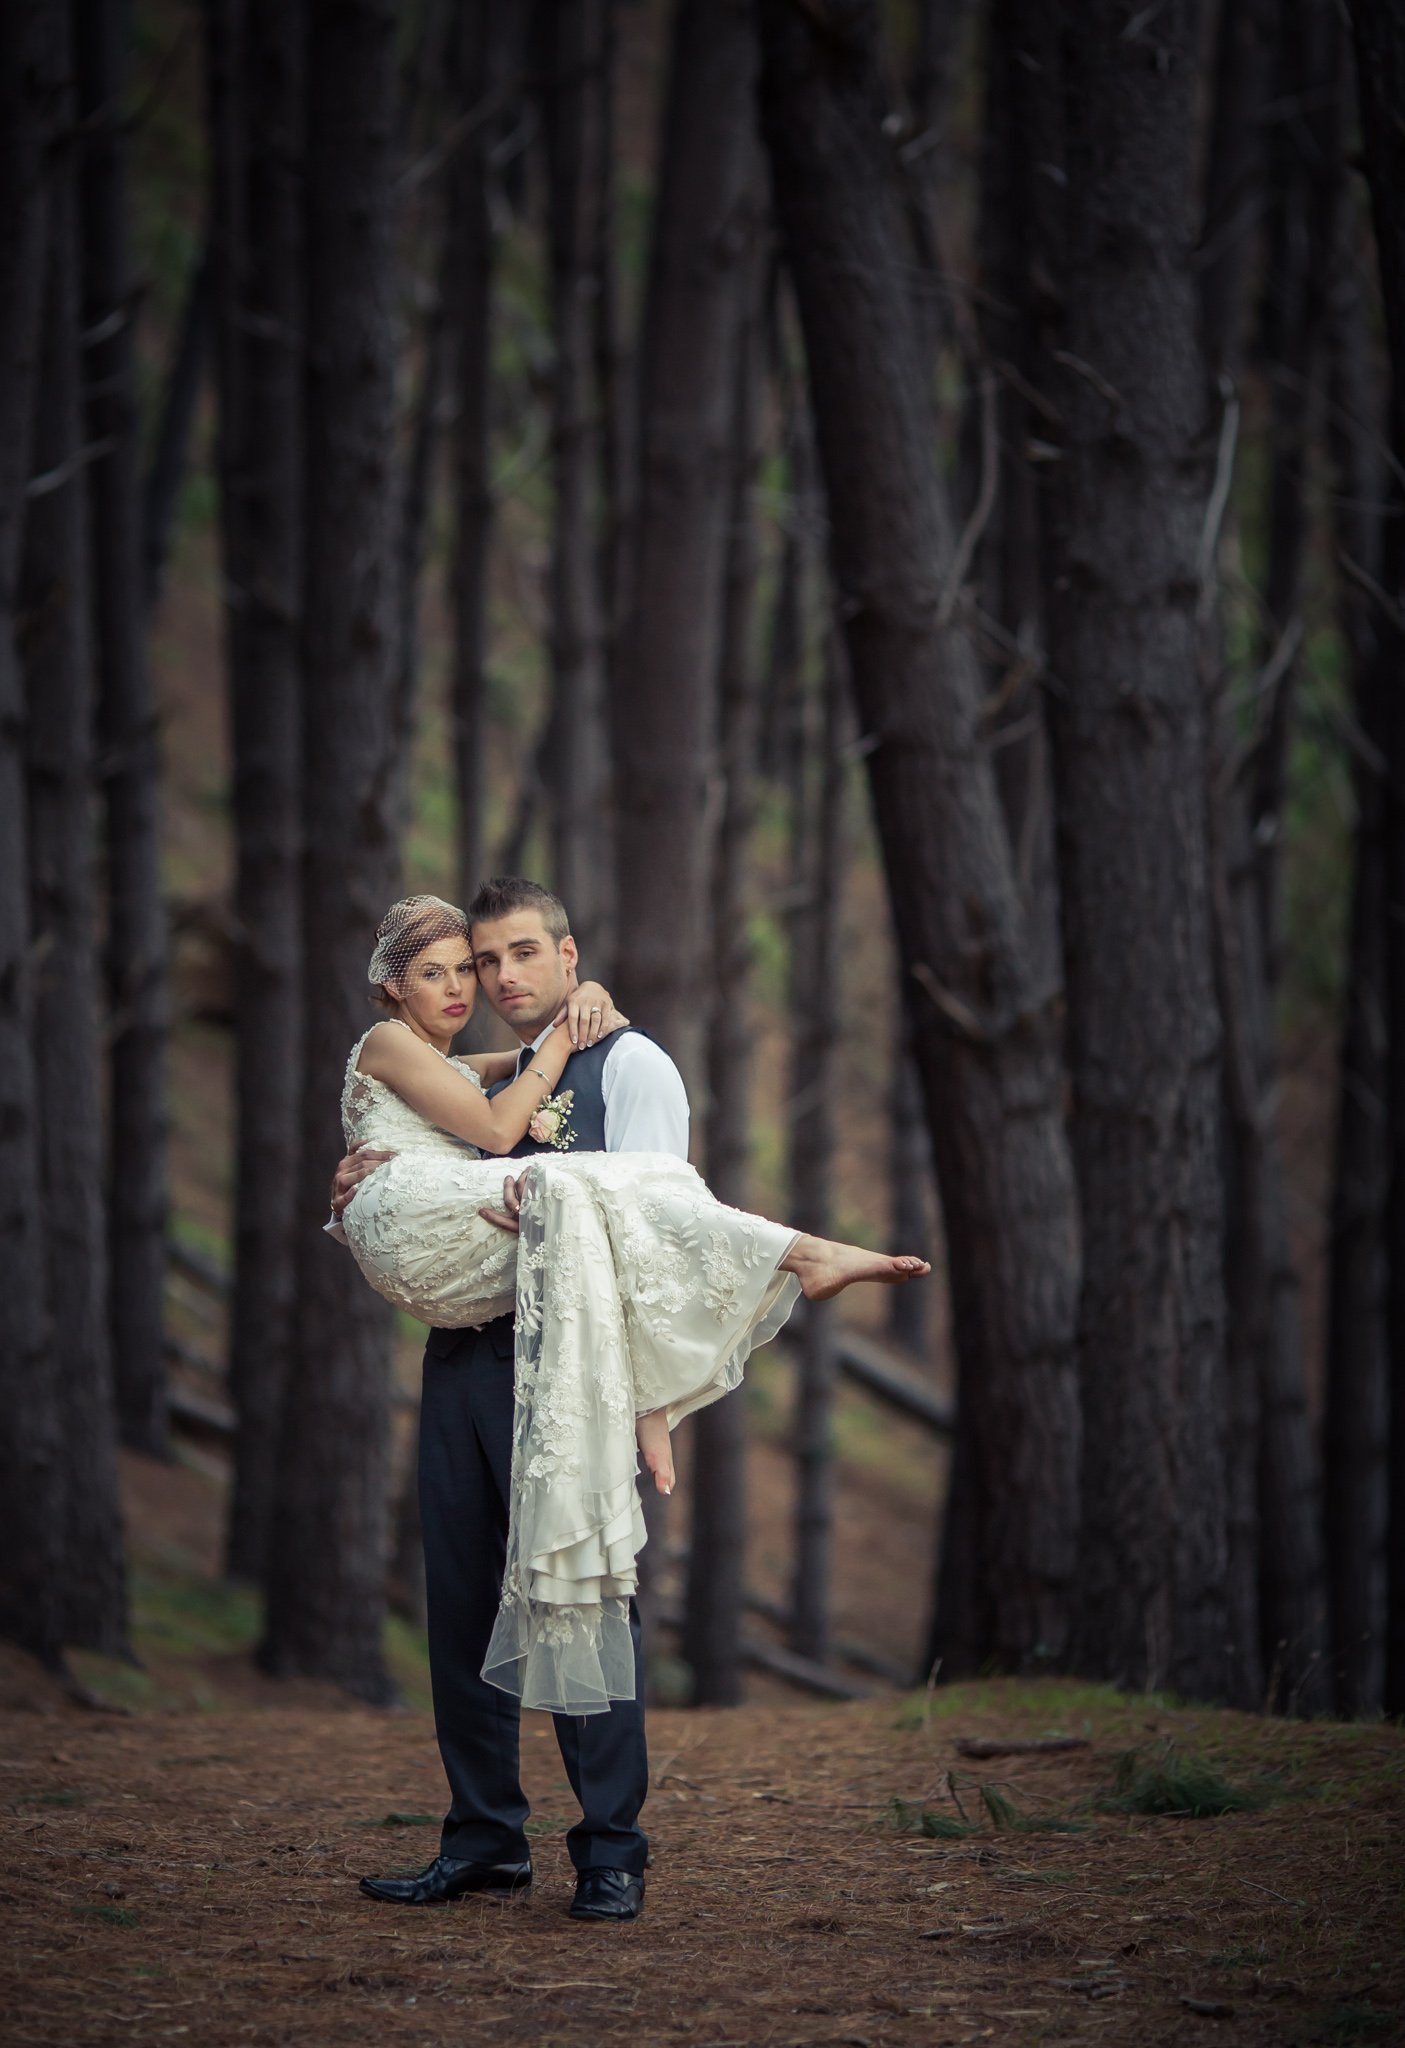 PaulMac, Adelaide Wedding Photographers